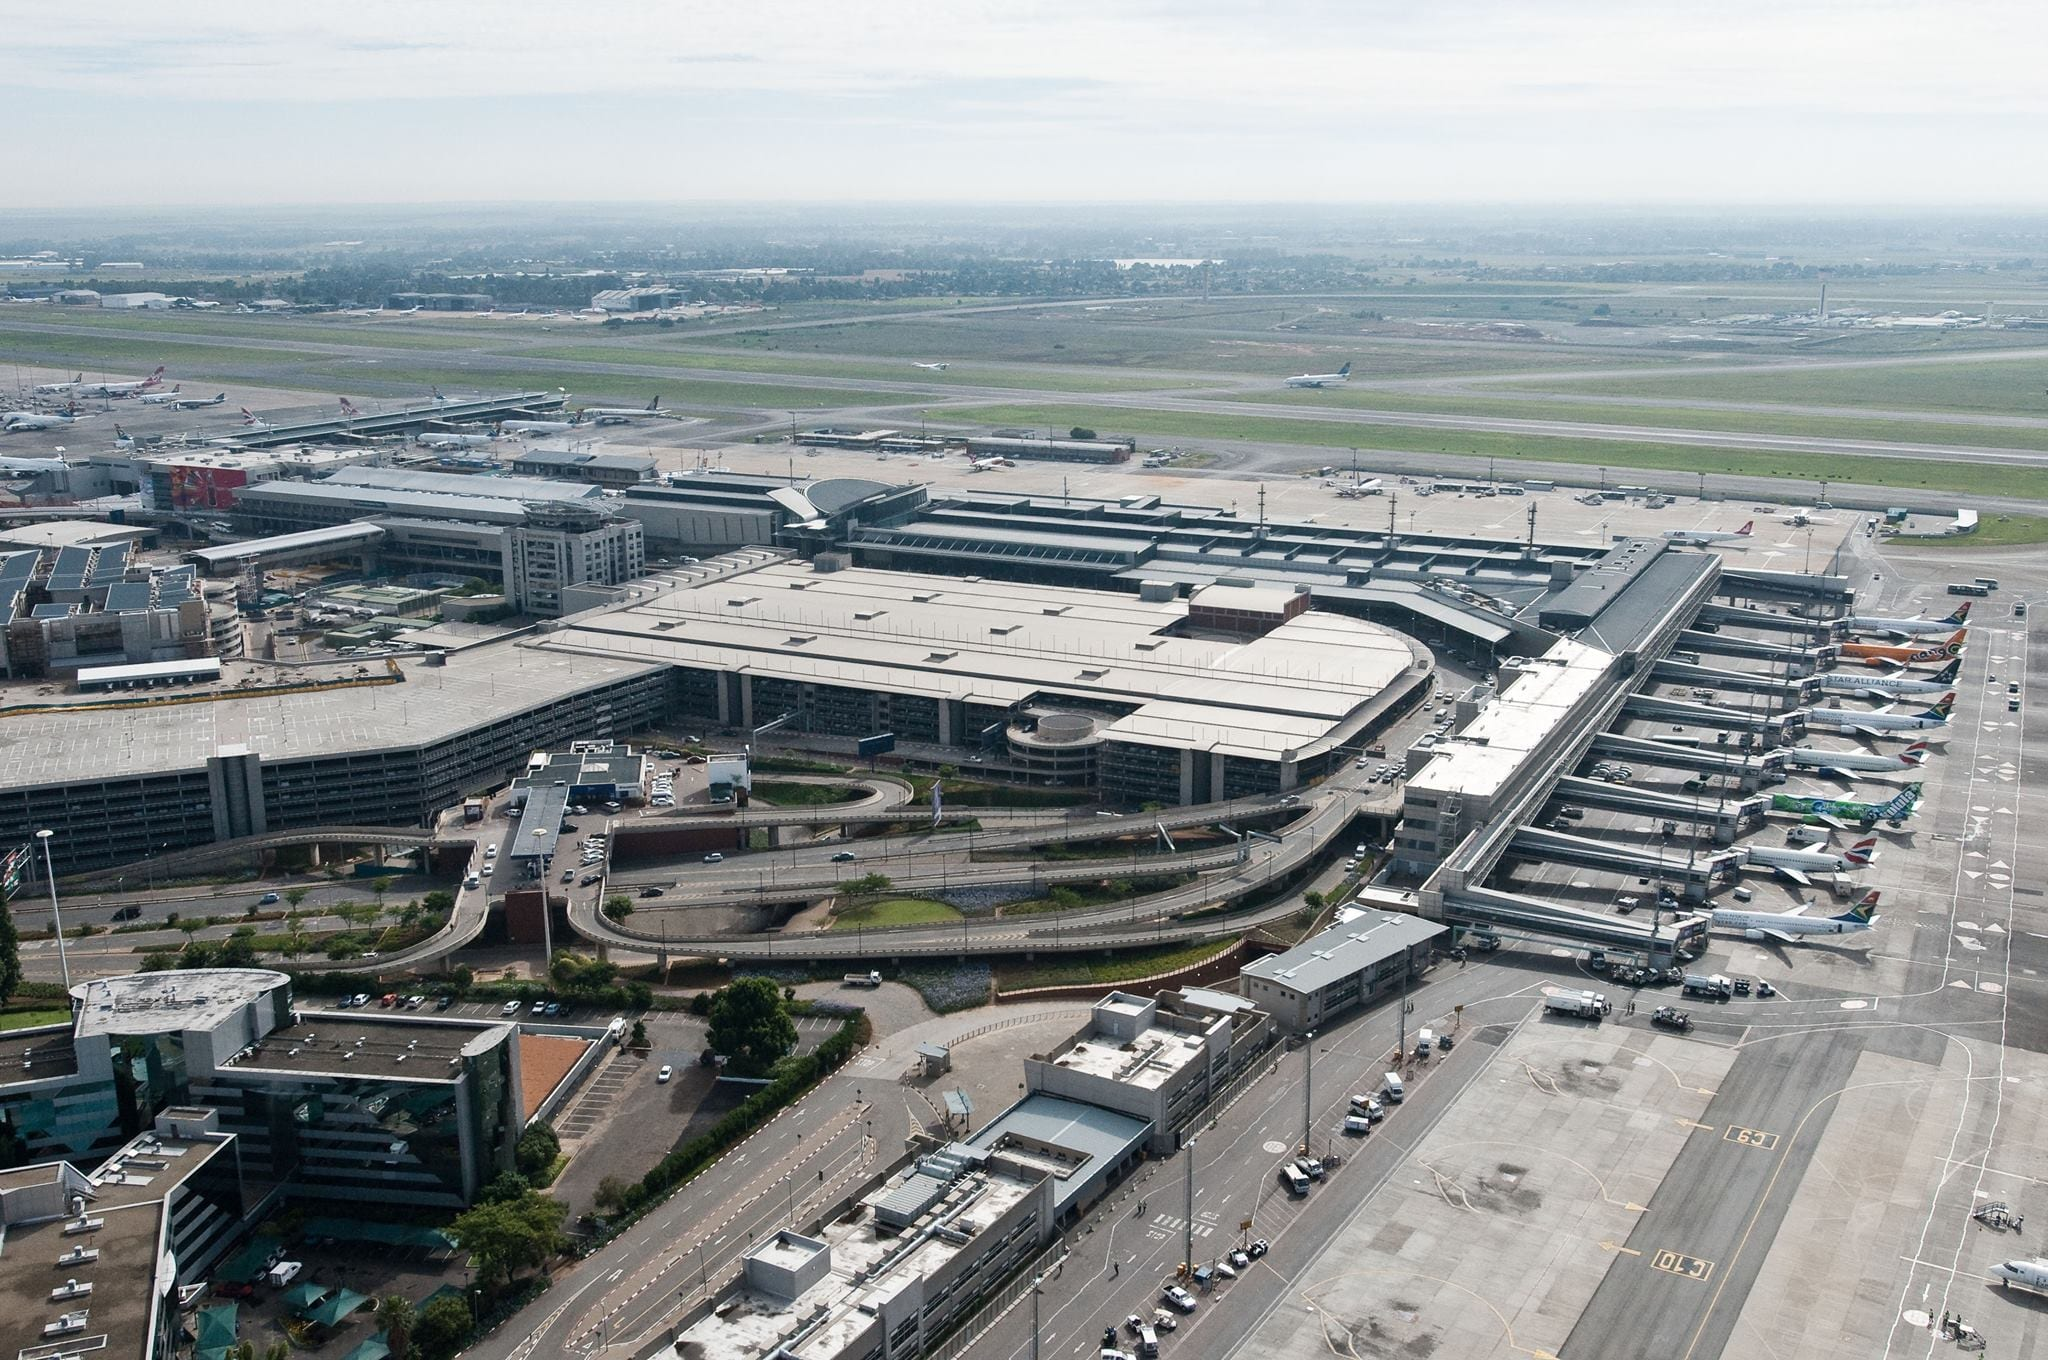 this is the busiest airport in africa